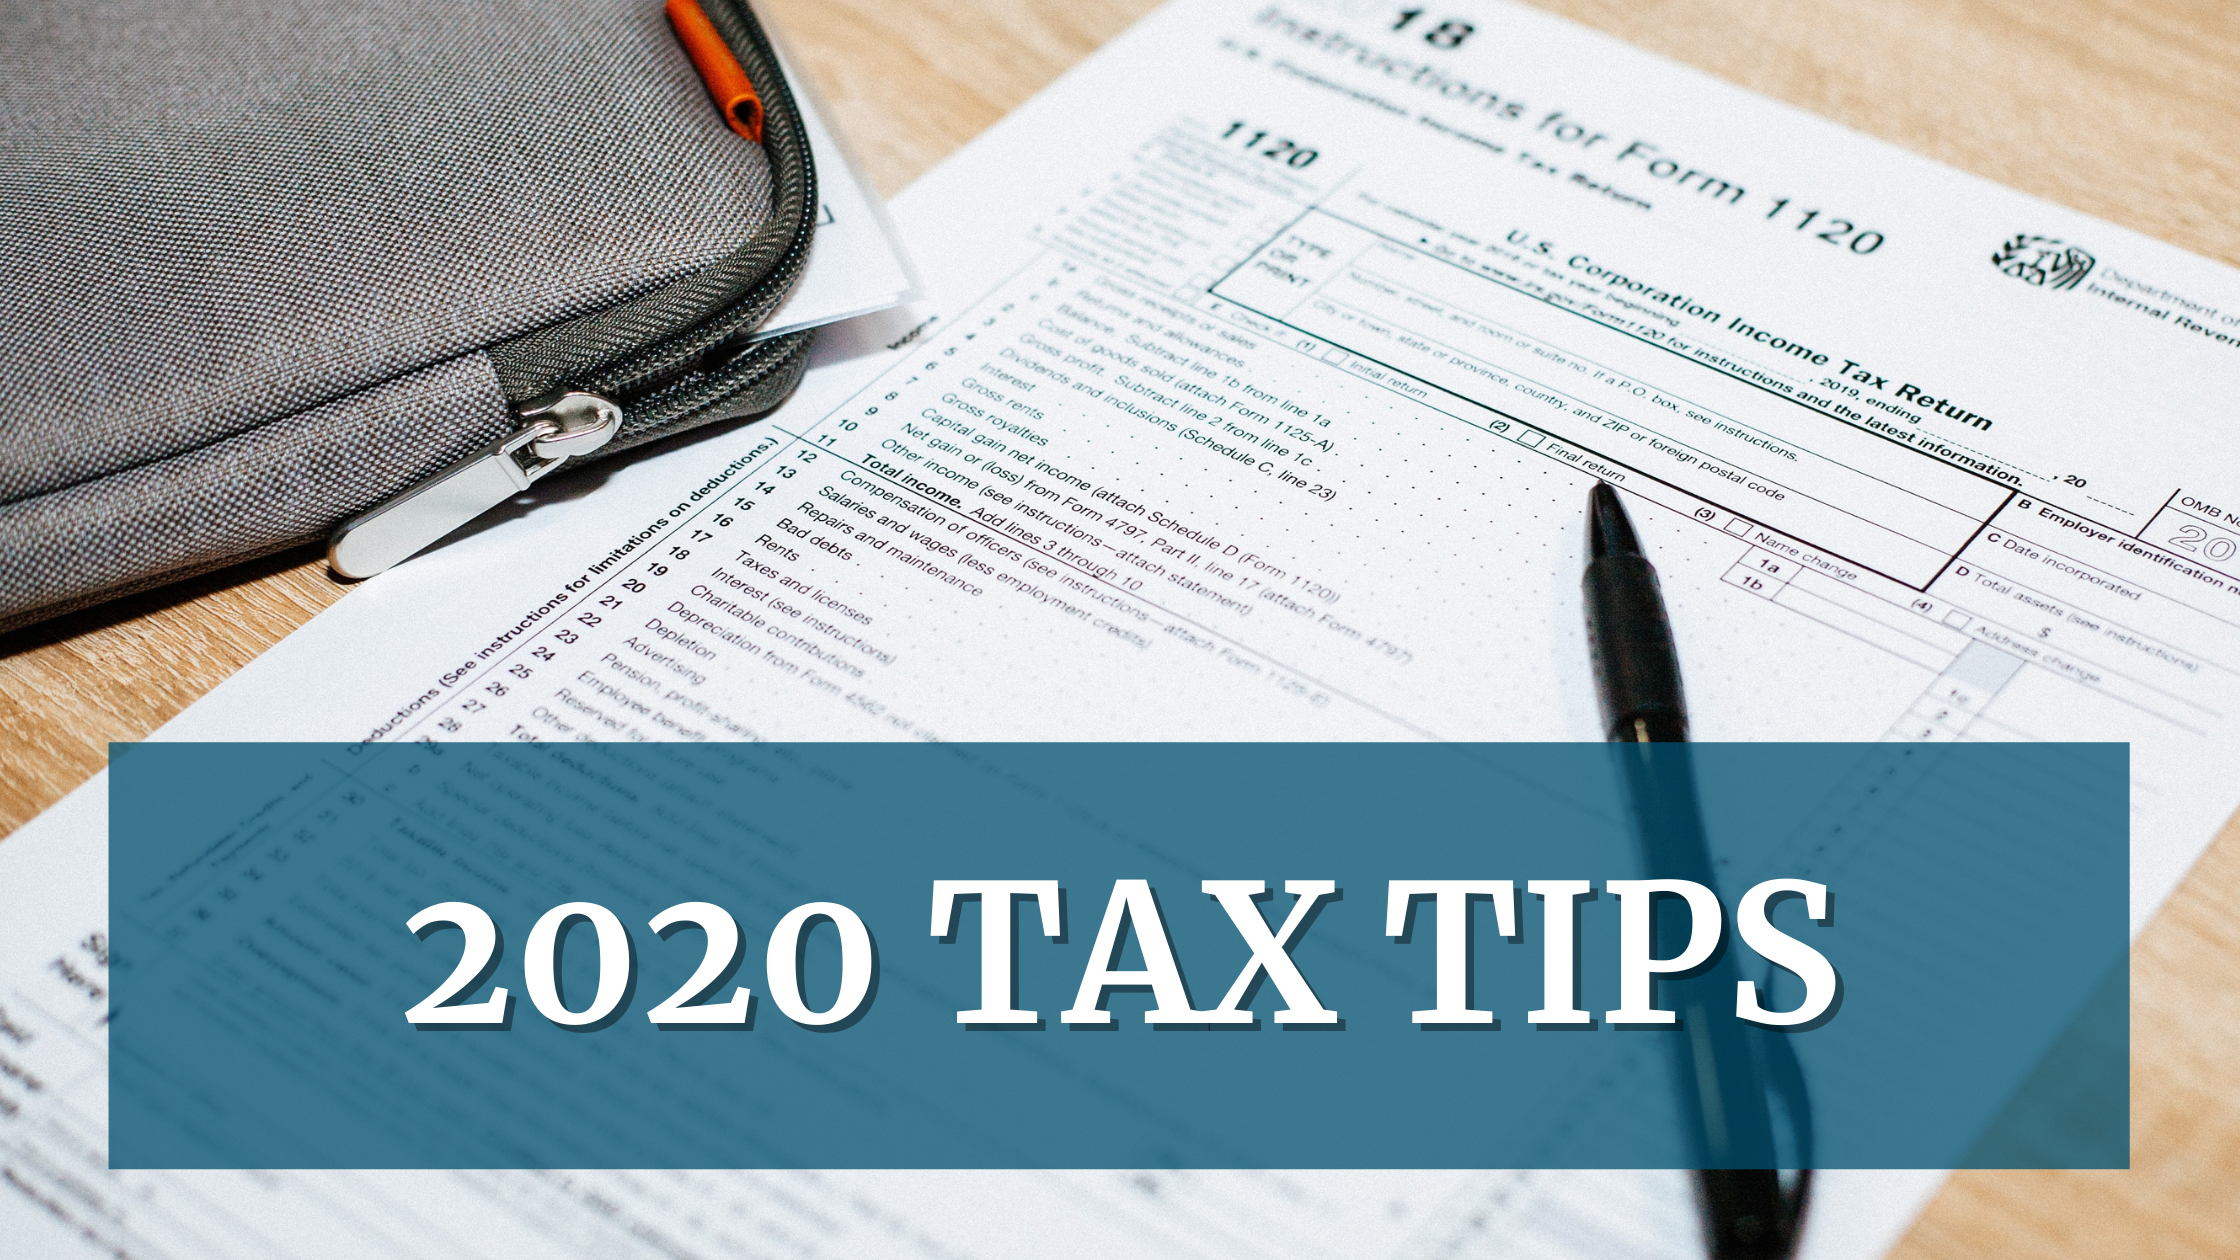 AFFCU 2020 Tax Tips Blog header- tax form image